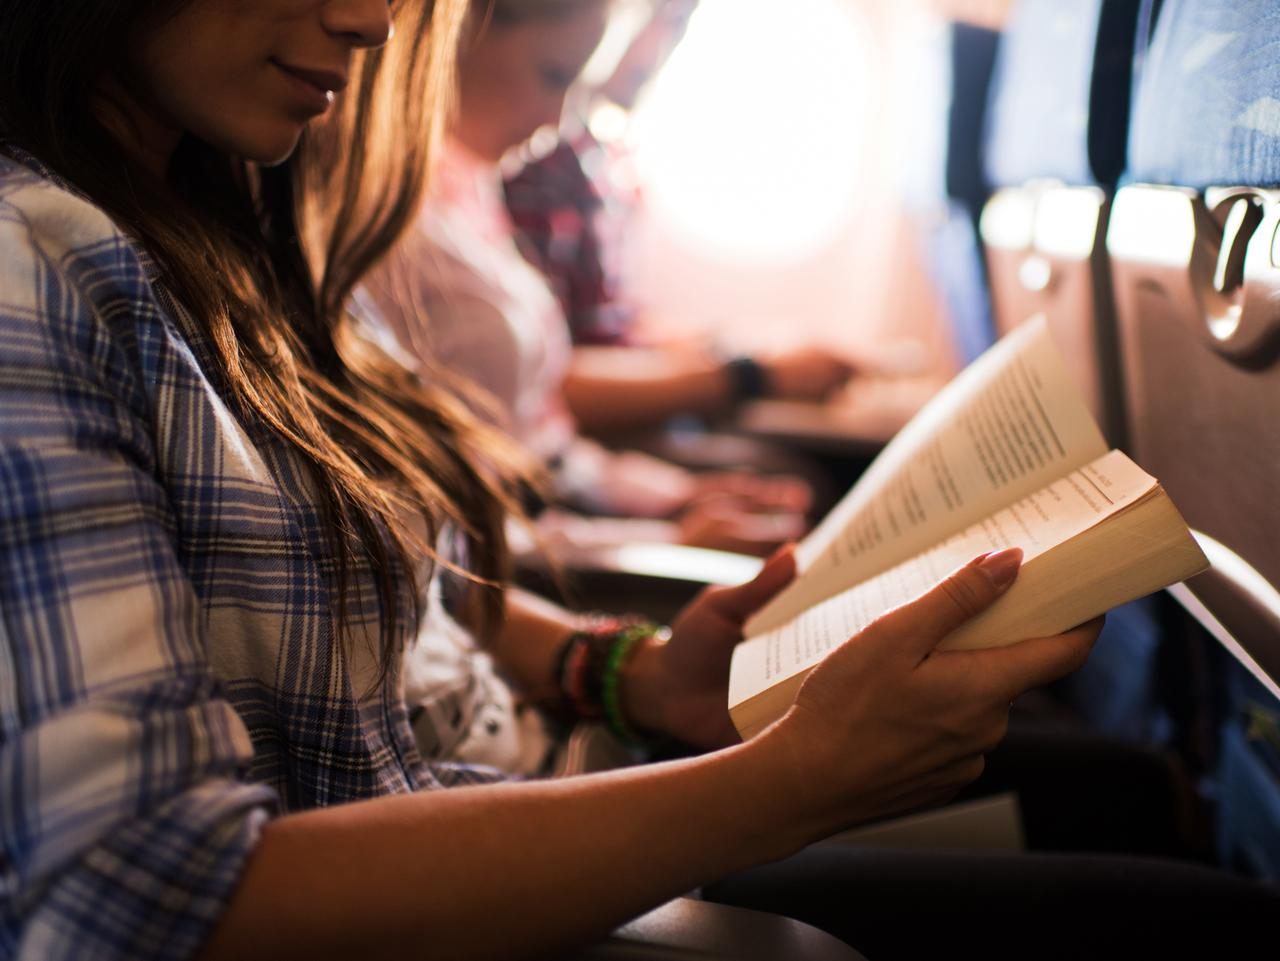 Unrecognizable woman reading a book during her flight.